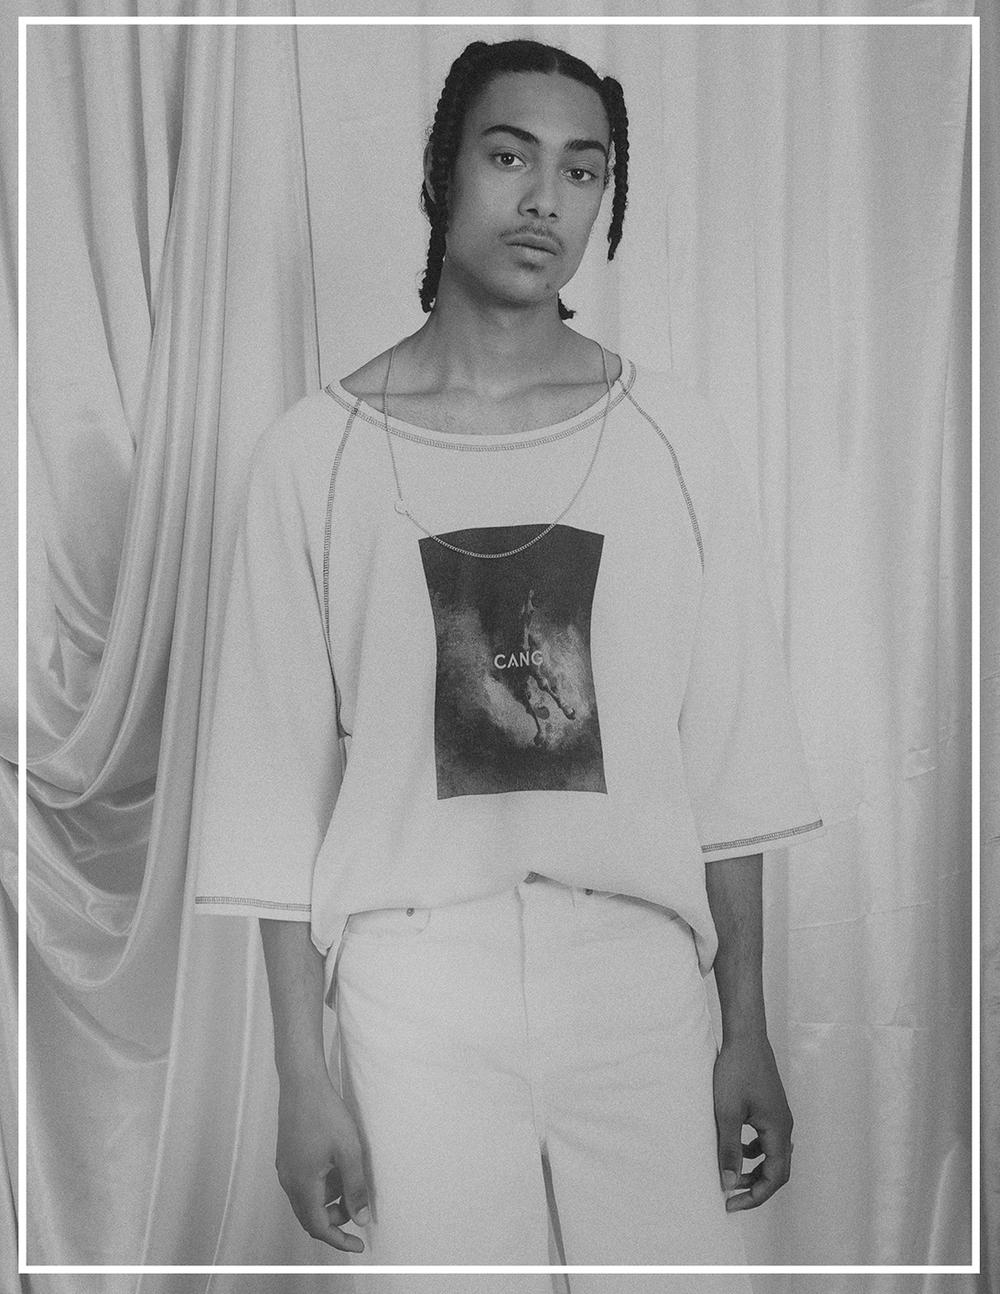 CANG 2018 Lookbook collection rise release date info drop jemaine nwankwo Conceptual Aesthetic Neutral Garments